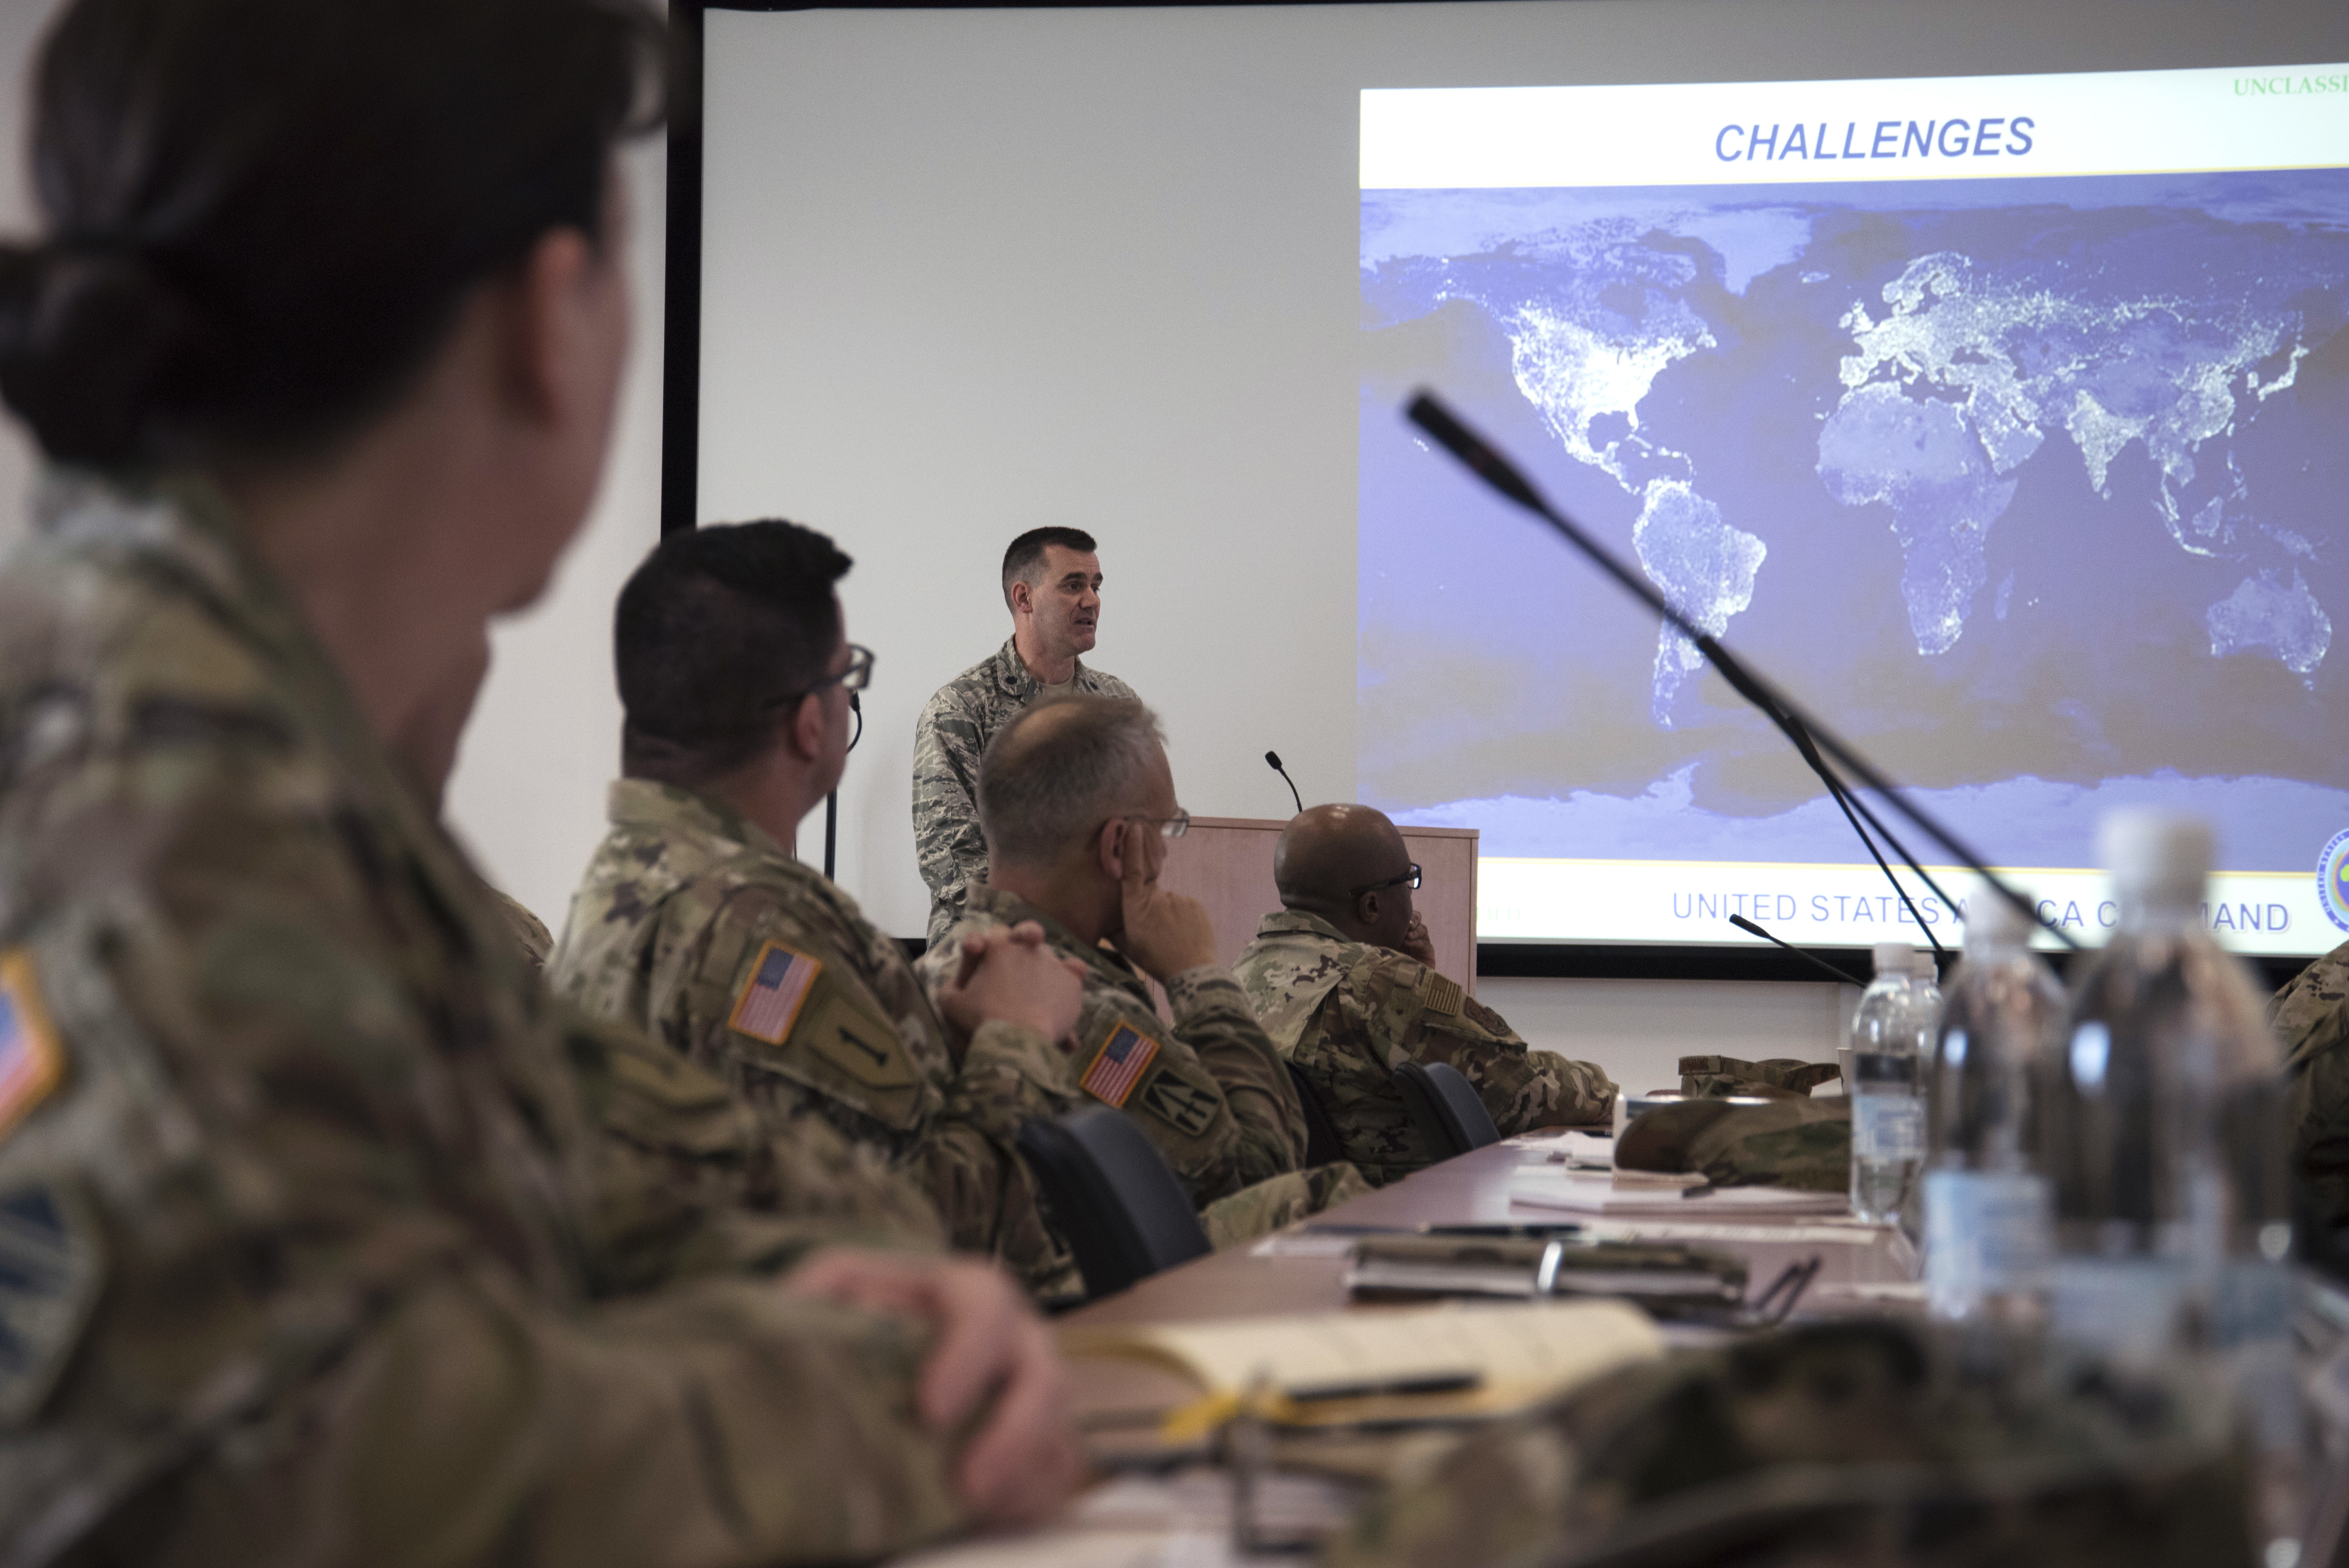 Air Force Lt. Col. Marcel Arel, AFRICOM multinational cooperation center, speaks to attendees of The 2019 Adjutant General State Partnership Program Conference April 15 in Stuttgart, Germany. Arel gave a brief overview of the AFRICOM mission and the challenges taking place in Africa. (U.S. Navy photo by Mass Communication Specialist 1st Class Christopher Hurd/Released)